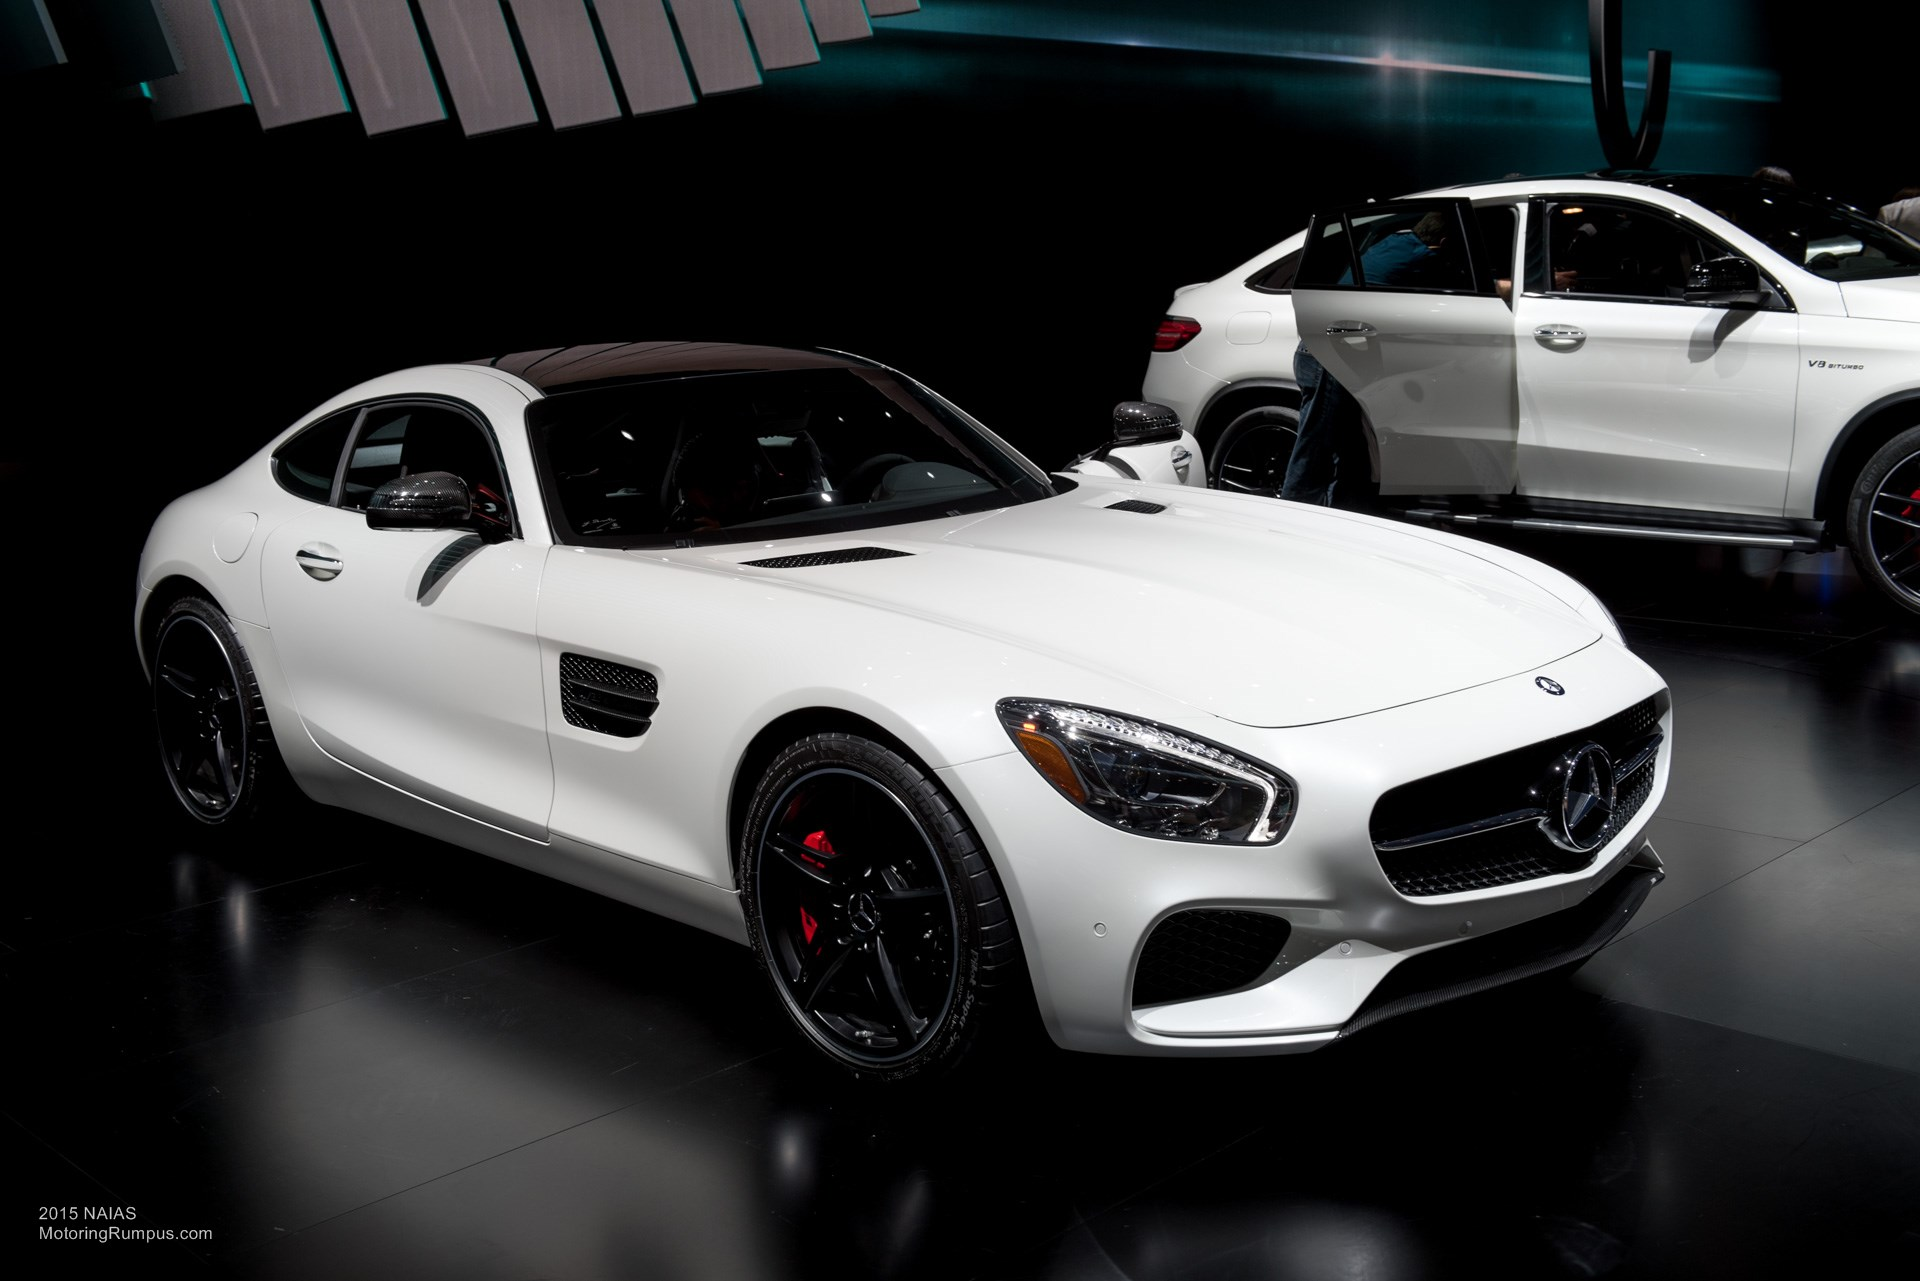 2015 NAIAS Mercedes AMG GT S Front